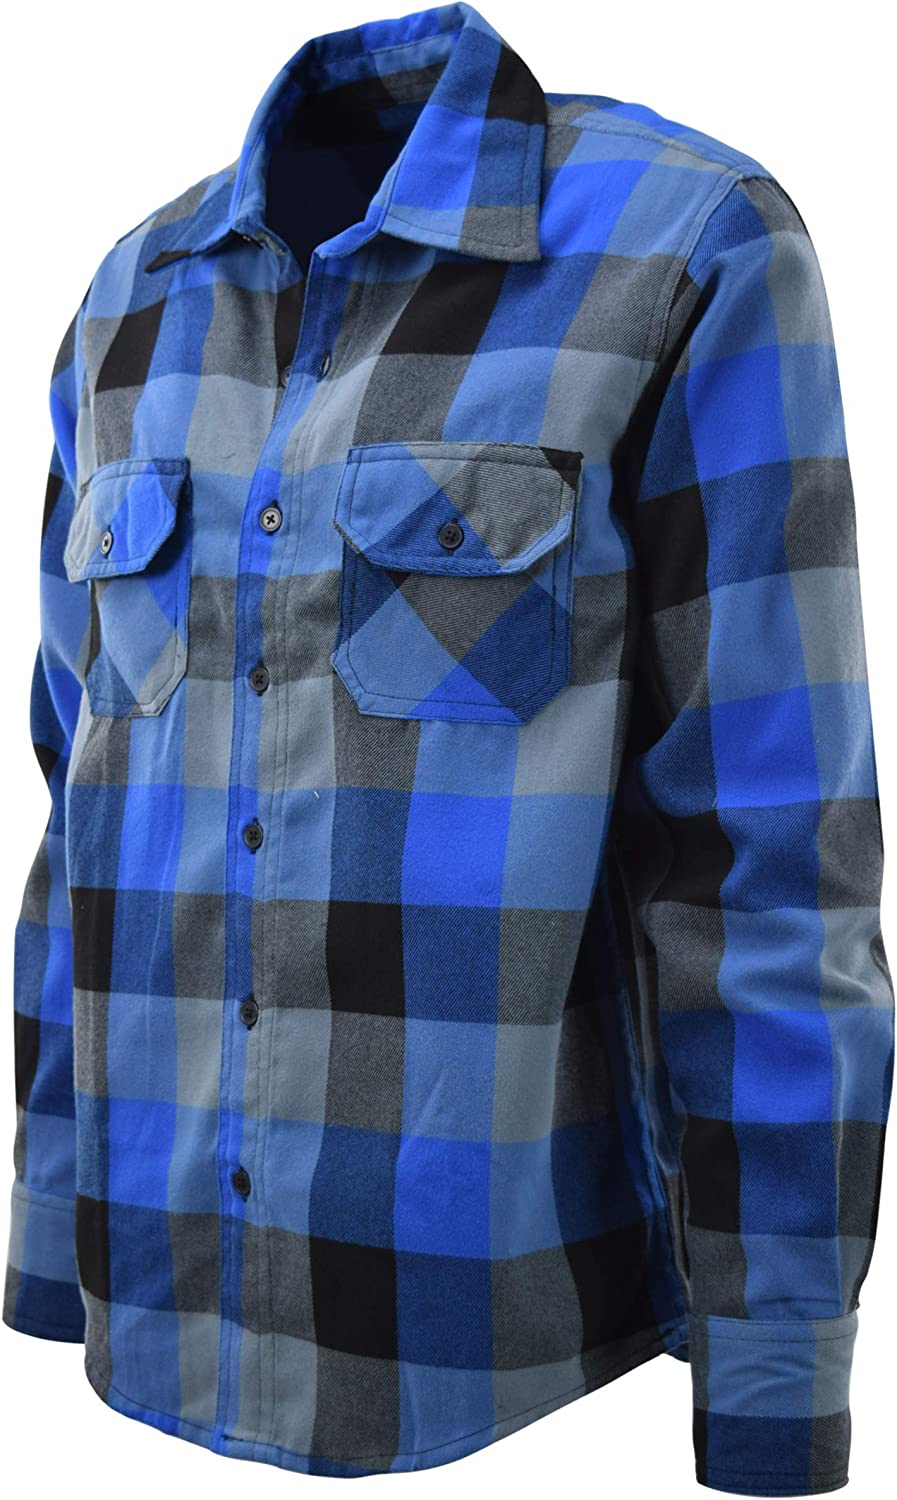 ChoiceApparel Mens Soft and Durable Button Down Flannel Long Sleeve Shirts Many Patterns and Colors